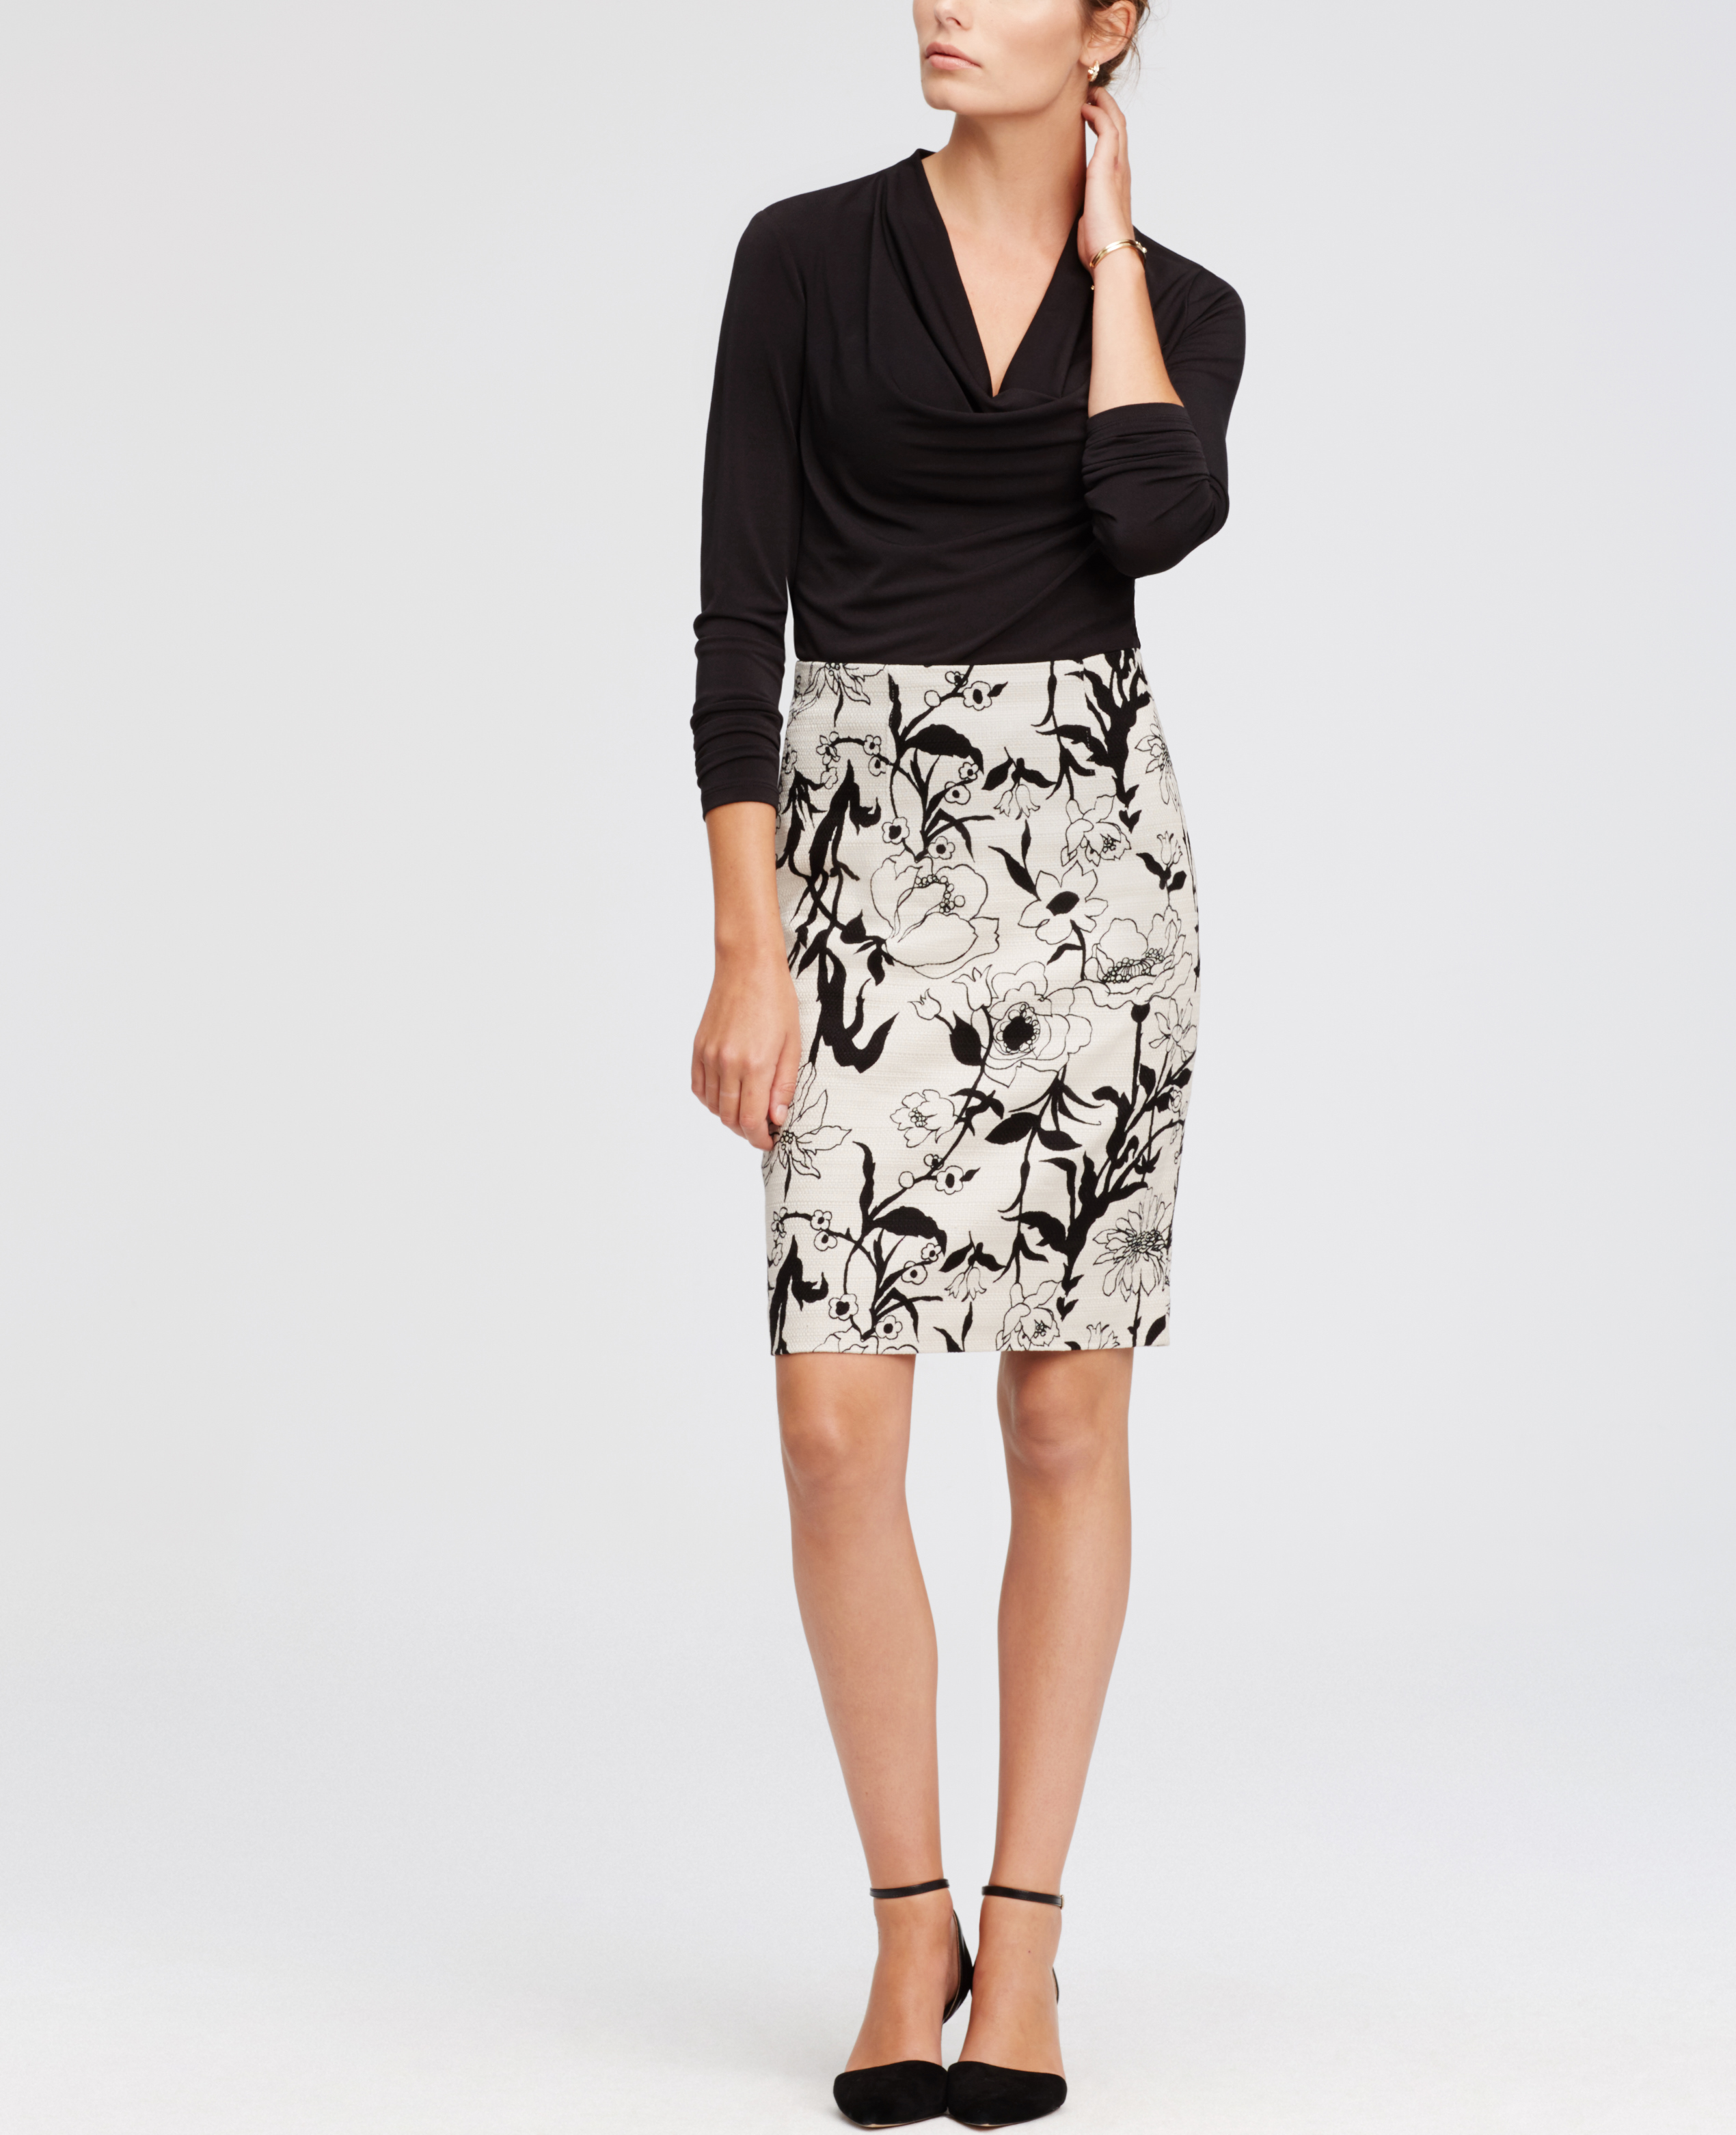 black and white floral pencil skirt dress